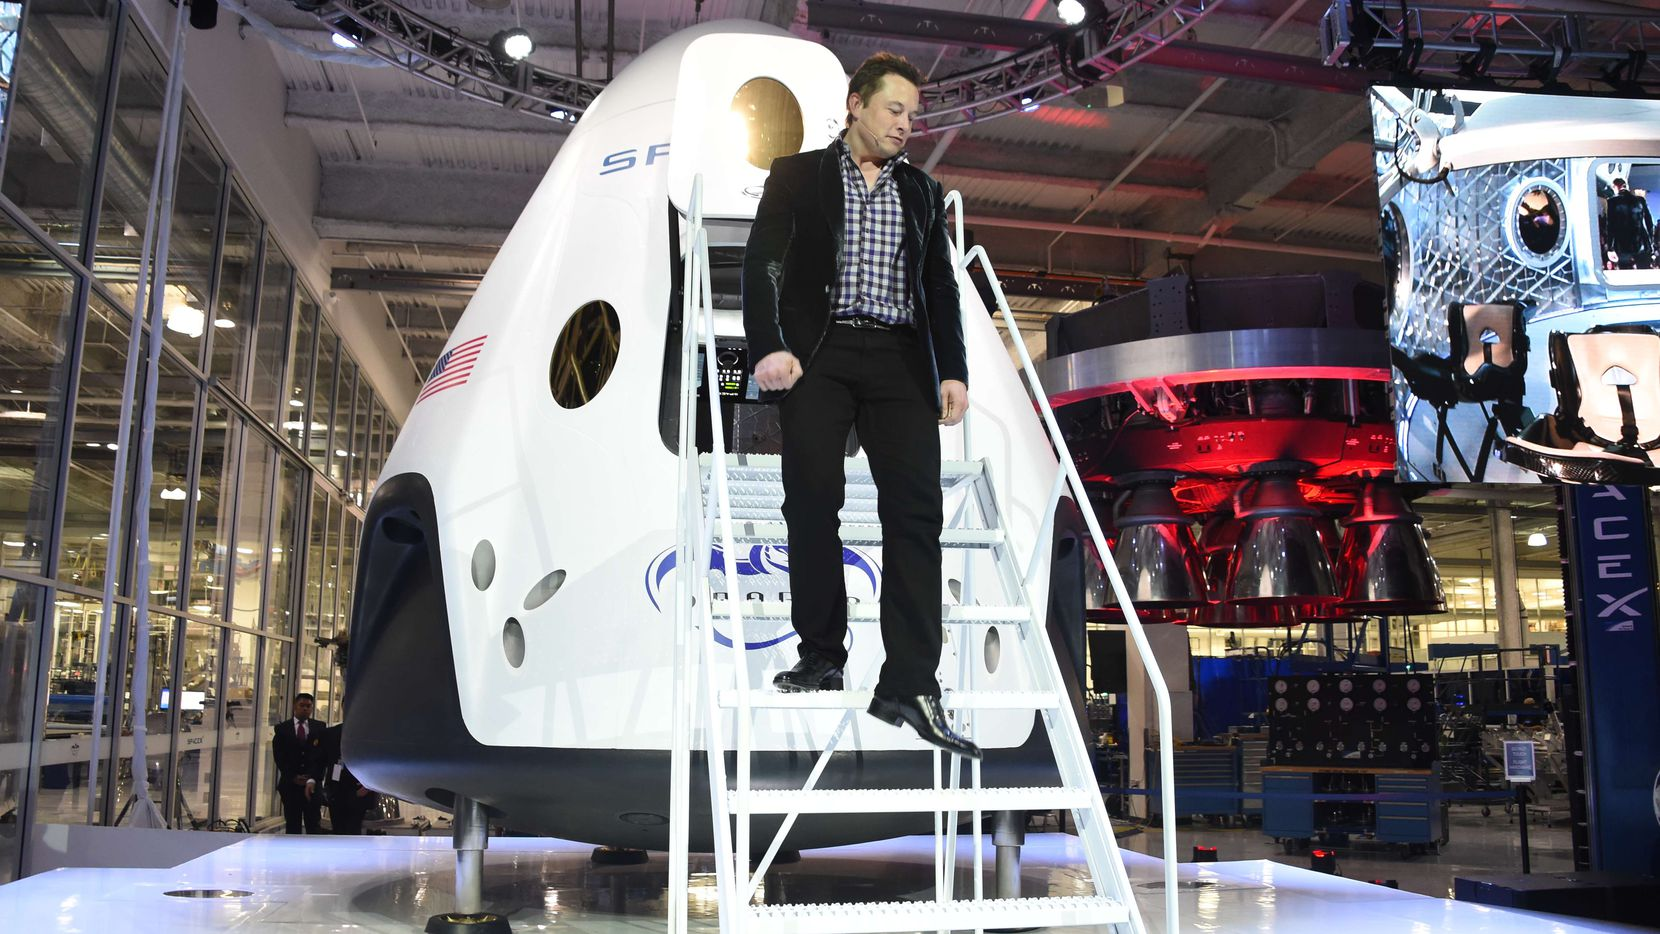 SpaceX CEO Elon Musk unveiled the company's seven-seat Dragon V2 spacecraft in Hawthorne, Calif., in the spring. With spacecraft that carry tourists into orbit and connect Paris to New York in less than two hours, the new heroes of space travel are not astronauts but billionaire captains of industry.